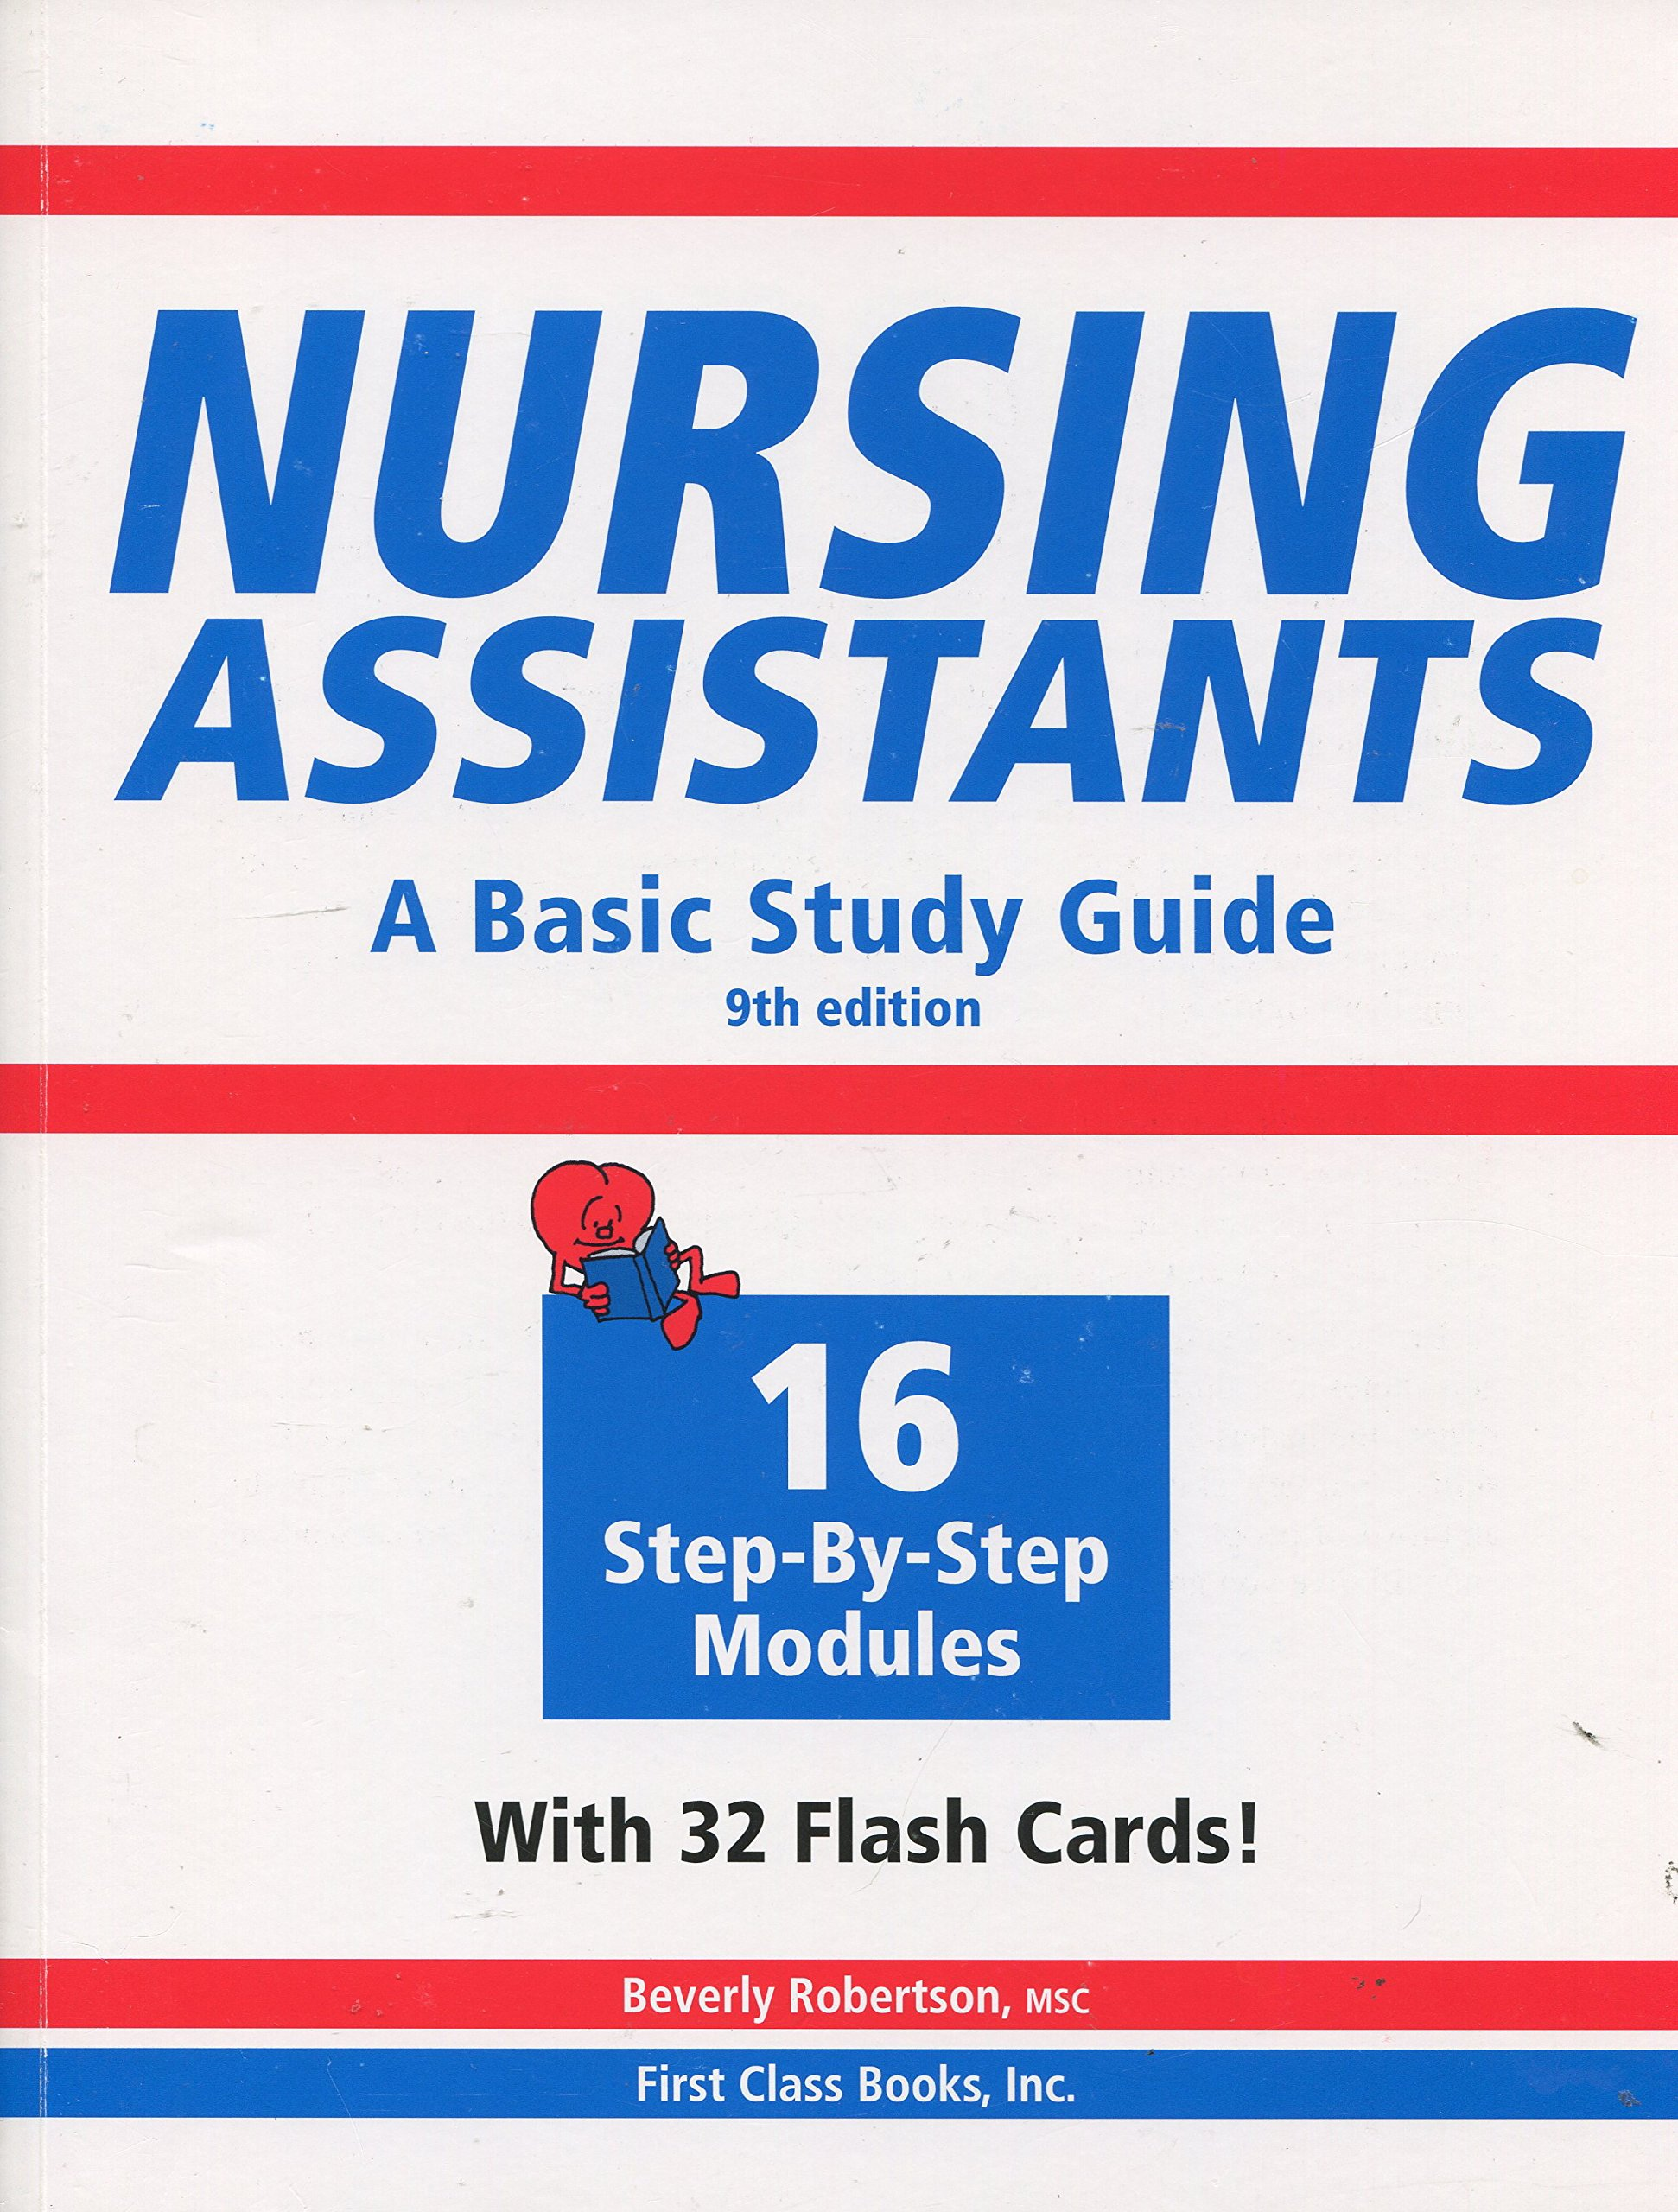 Nursing assistants a basic study guide 9th edition book flash nursing assistants a basic study guide 9th edition book flash cards beverly robertson 9780578006413 amazon books xflitez Image collections